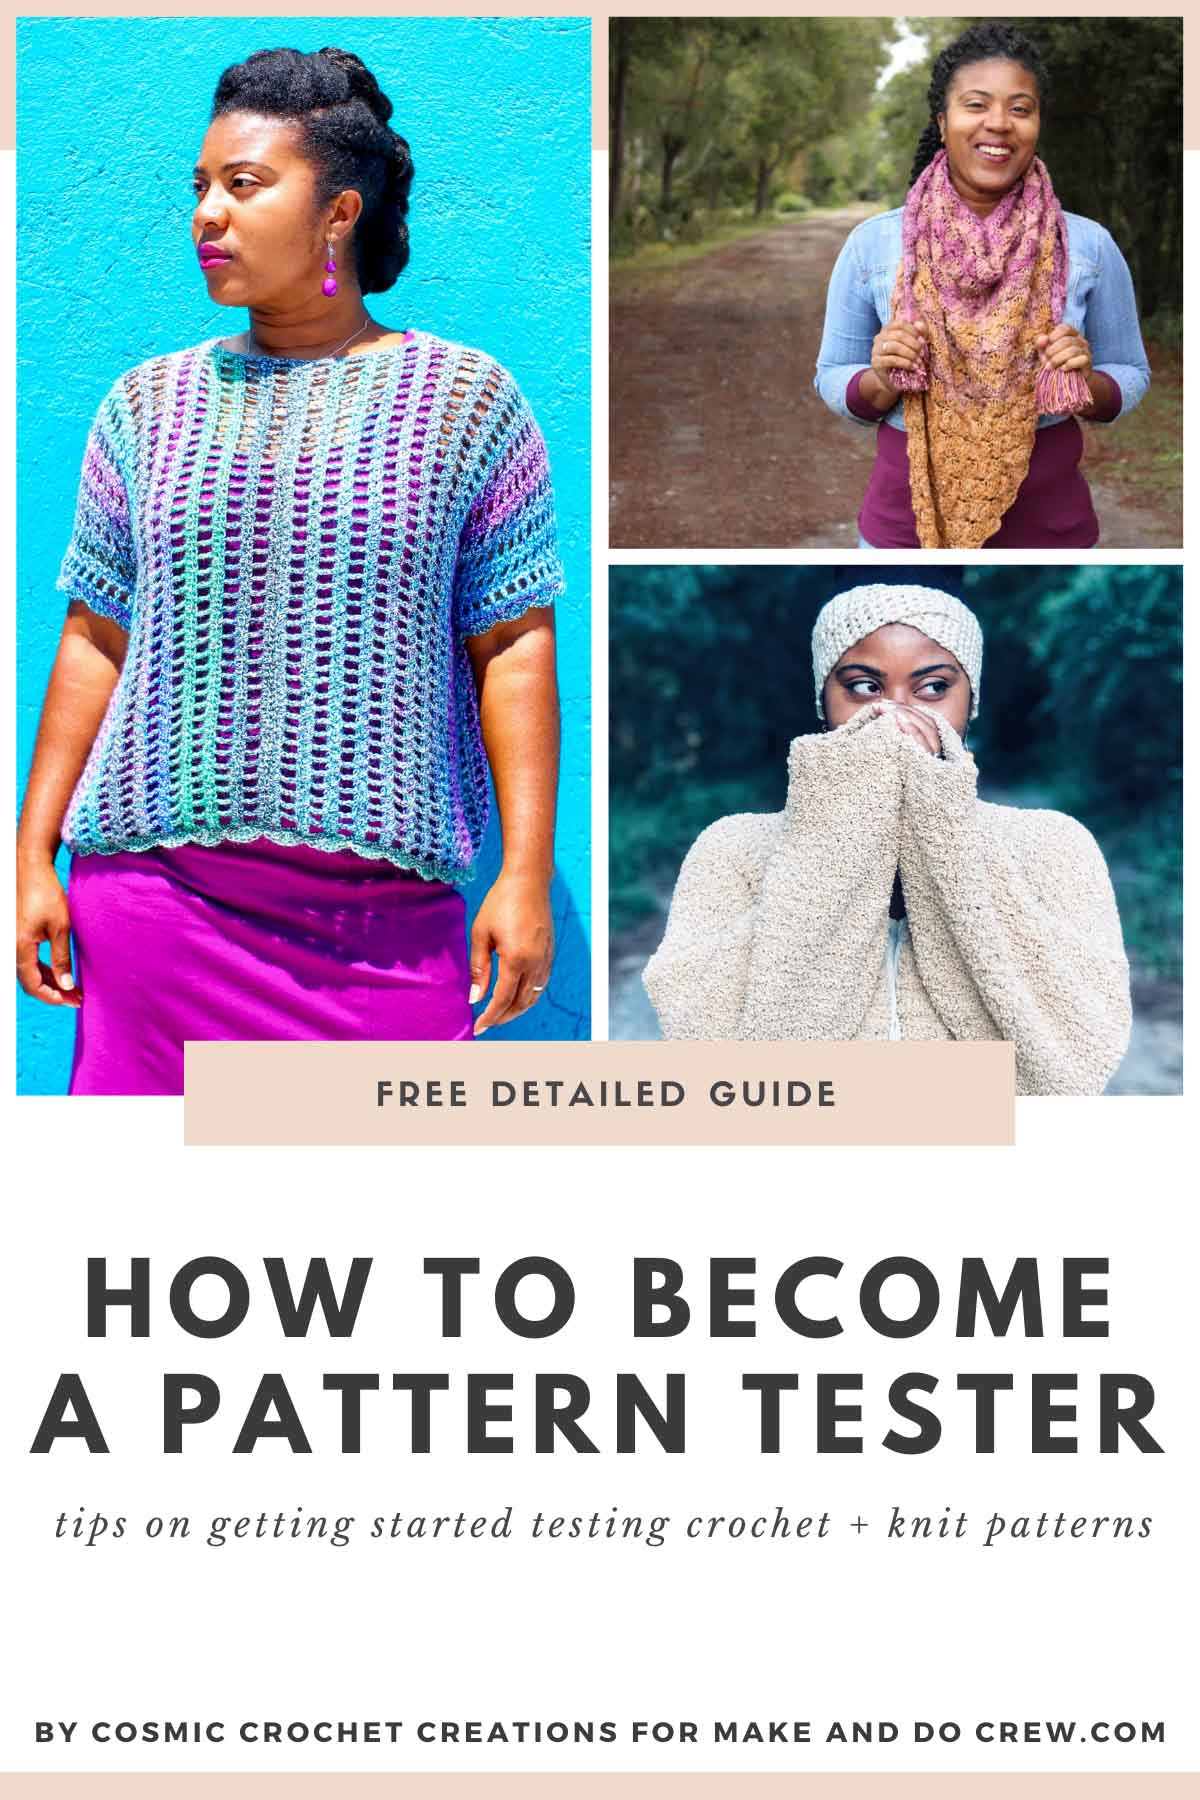 Nkese Lewis, pictured here wearing a variety of knit and crochet garments, provides tips on how to become a crochet pattern tester.